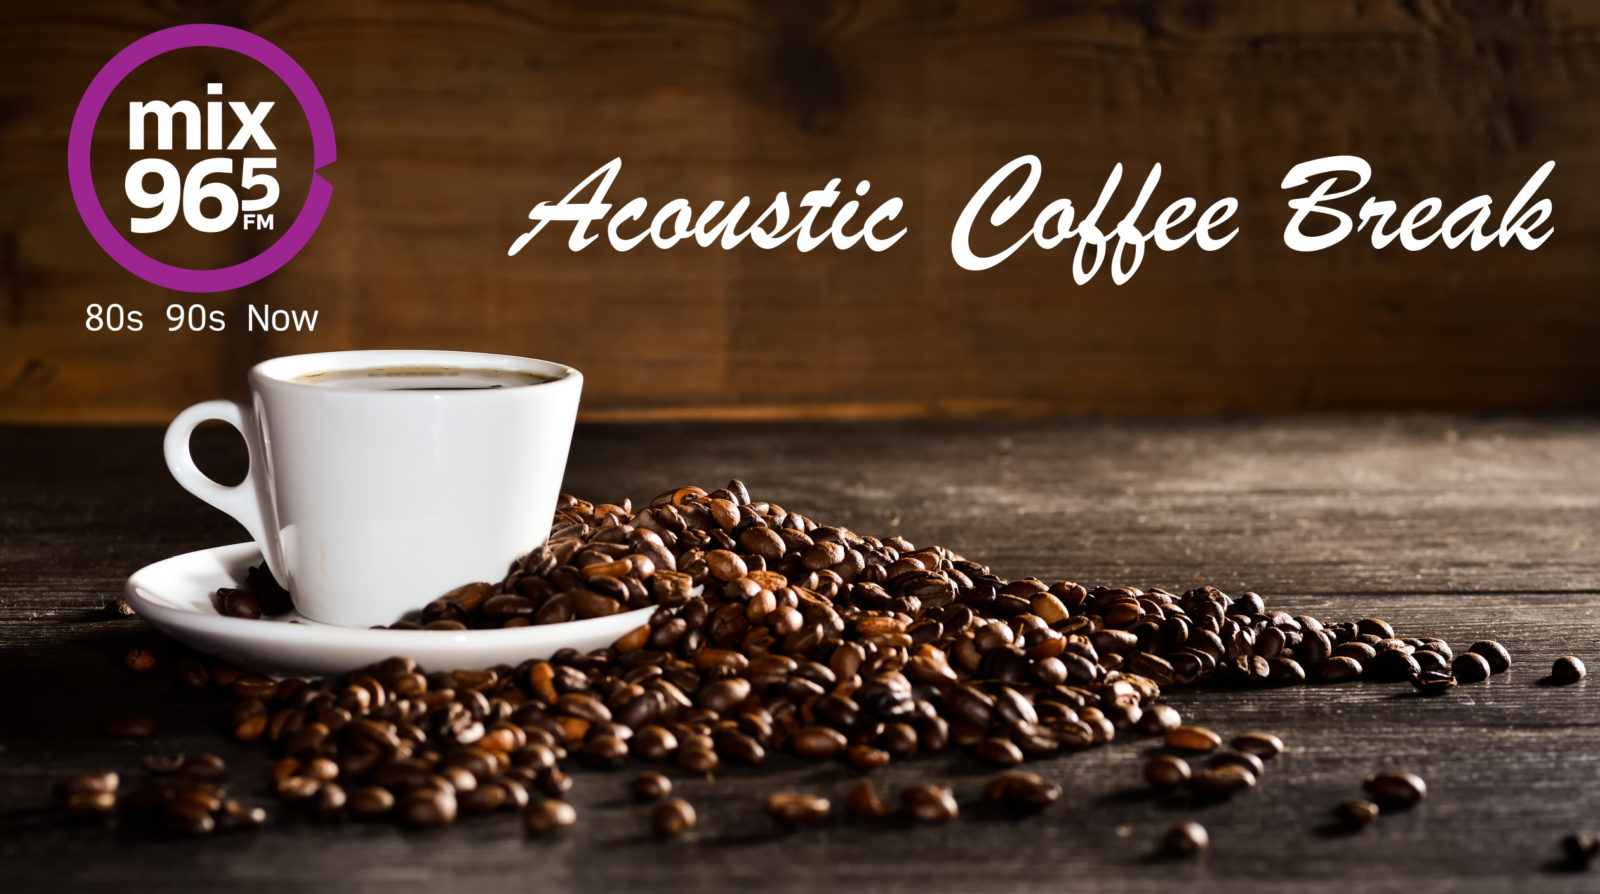 Acoustic Coffee Break_Banner